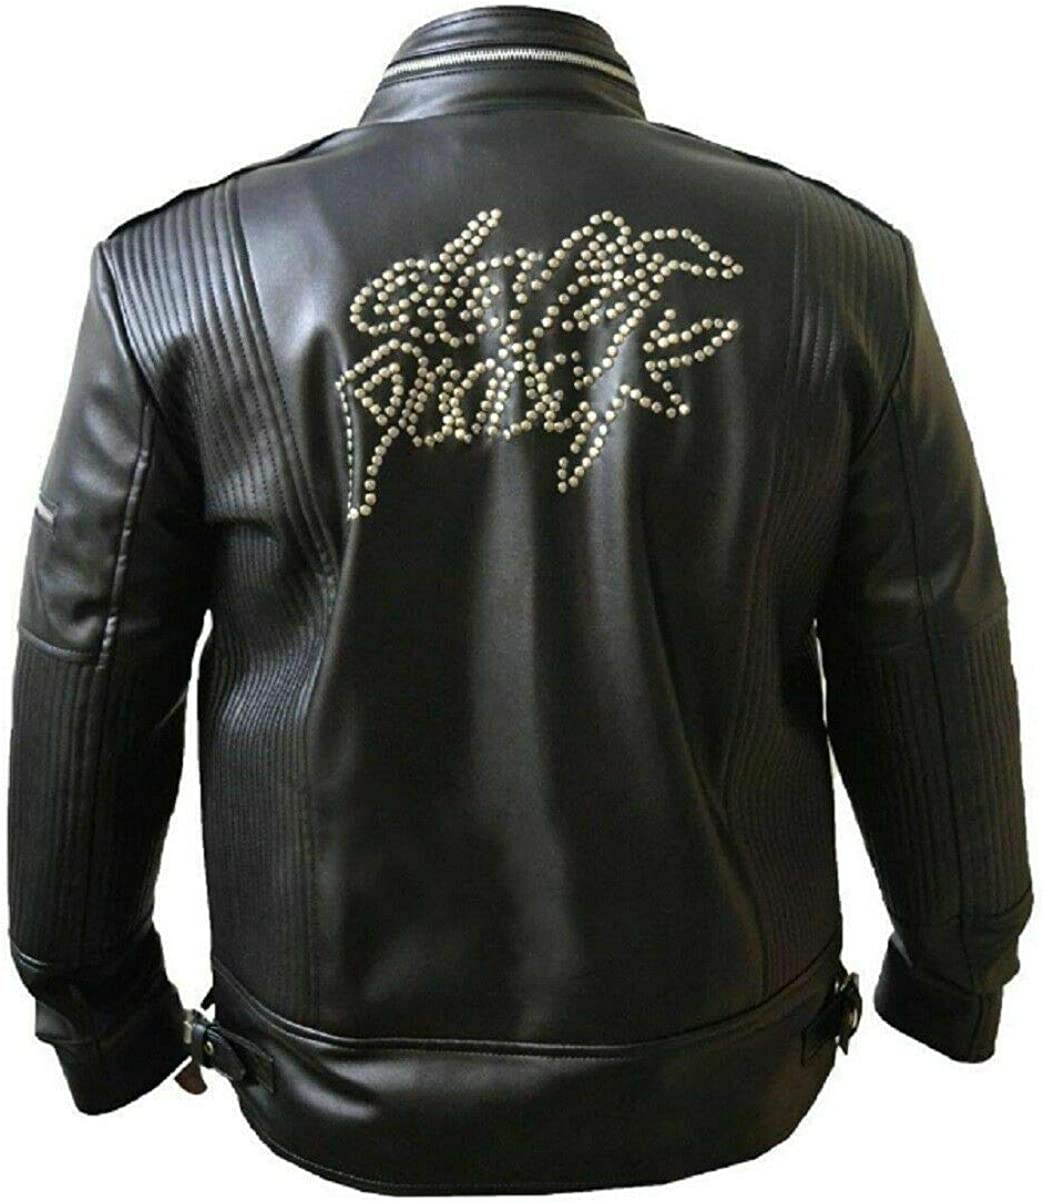 Quantity limited ADS Fashion Jacket Makers Men's Lucky Black Daft Super beauty product restock quality top Punk Get